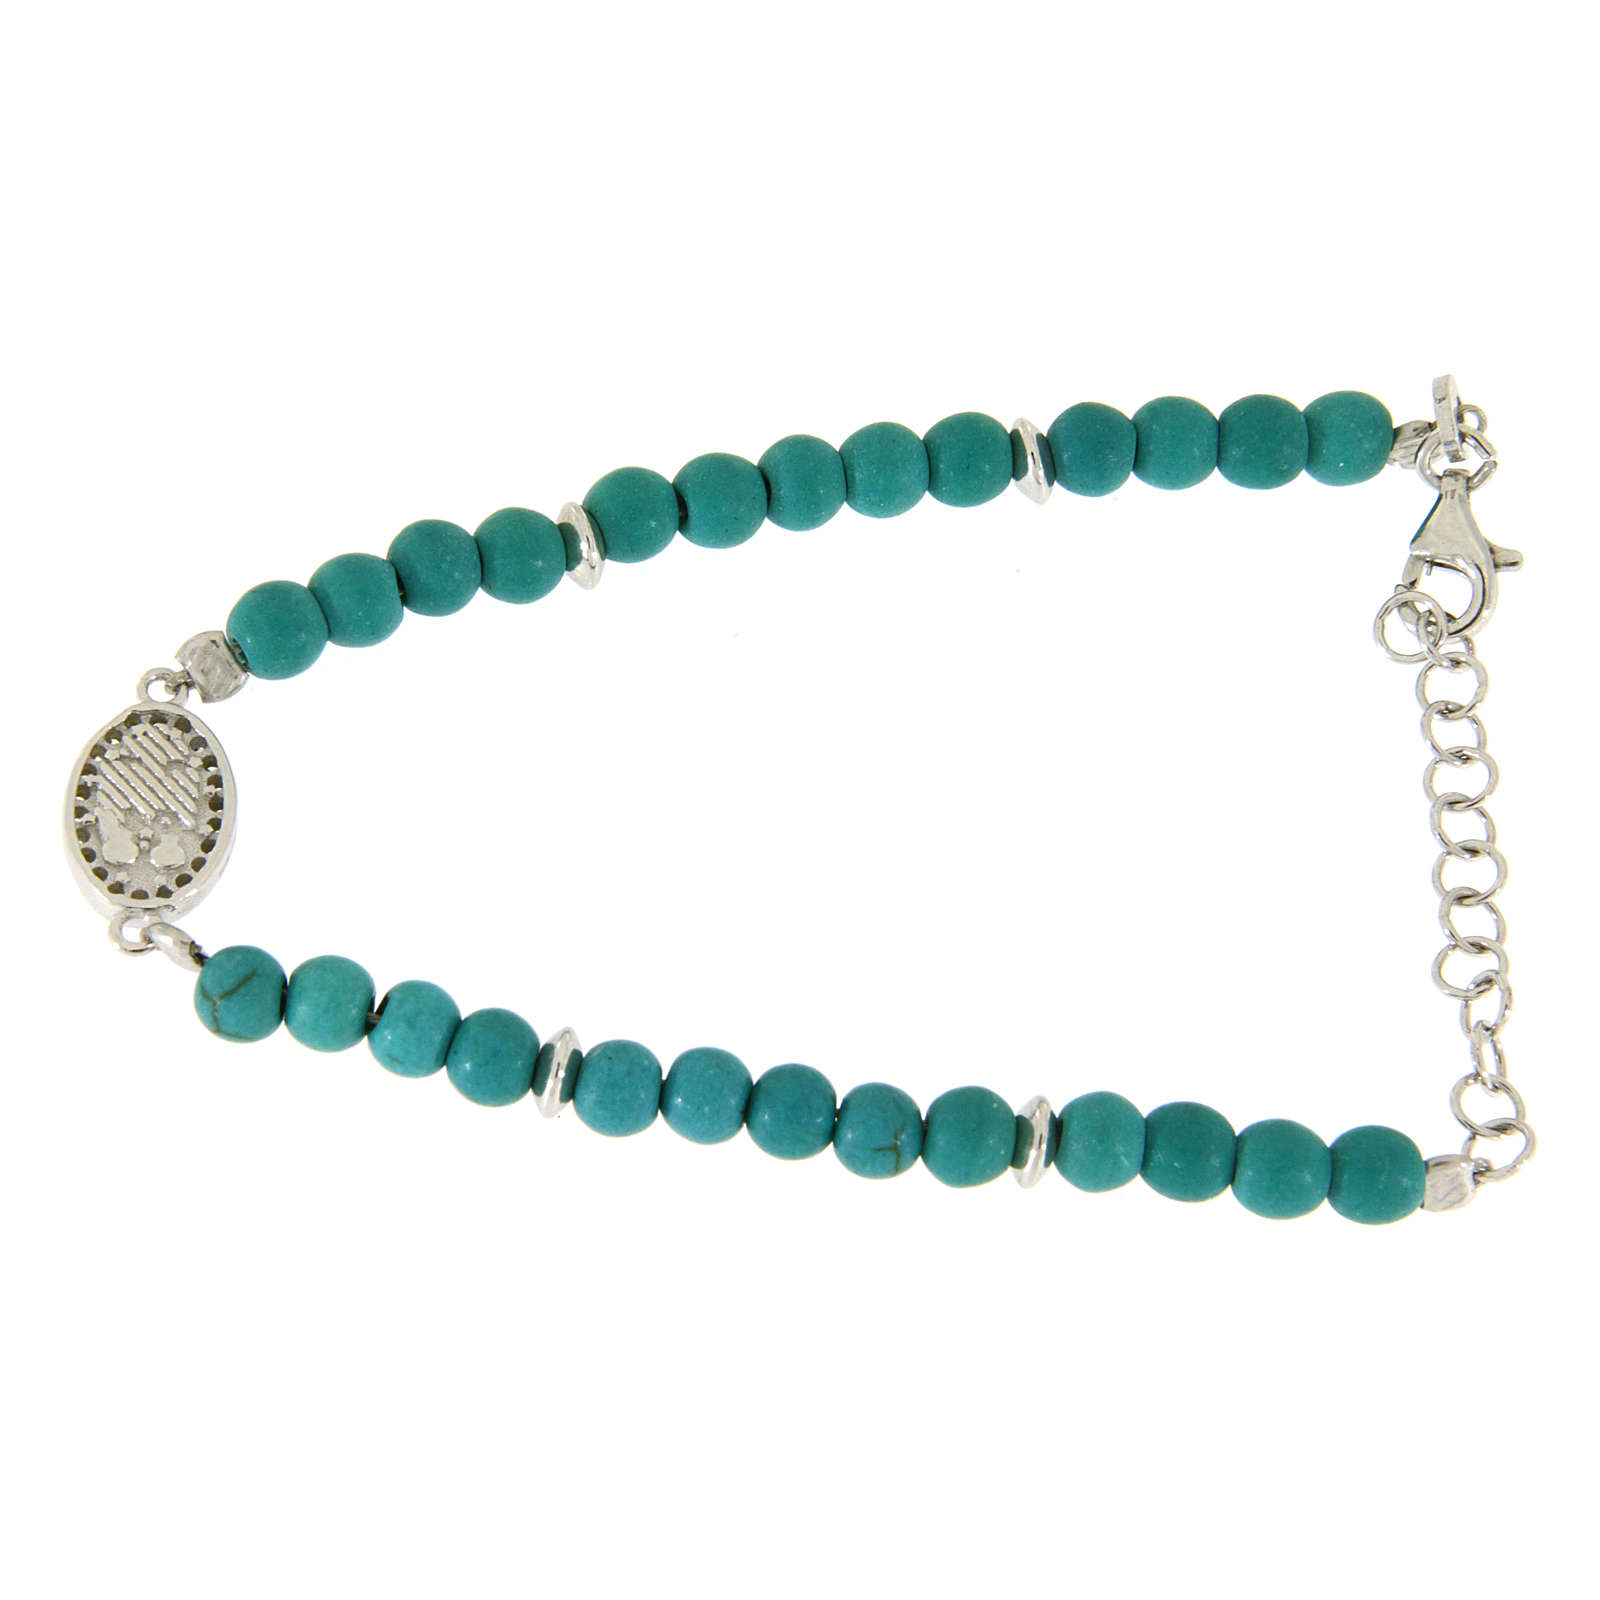 Bracelet with turquoise paste beads, Saint Rita medaley and white zircons, in 925 sterling silver 4